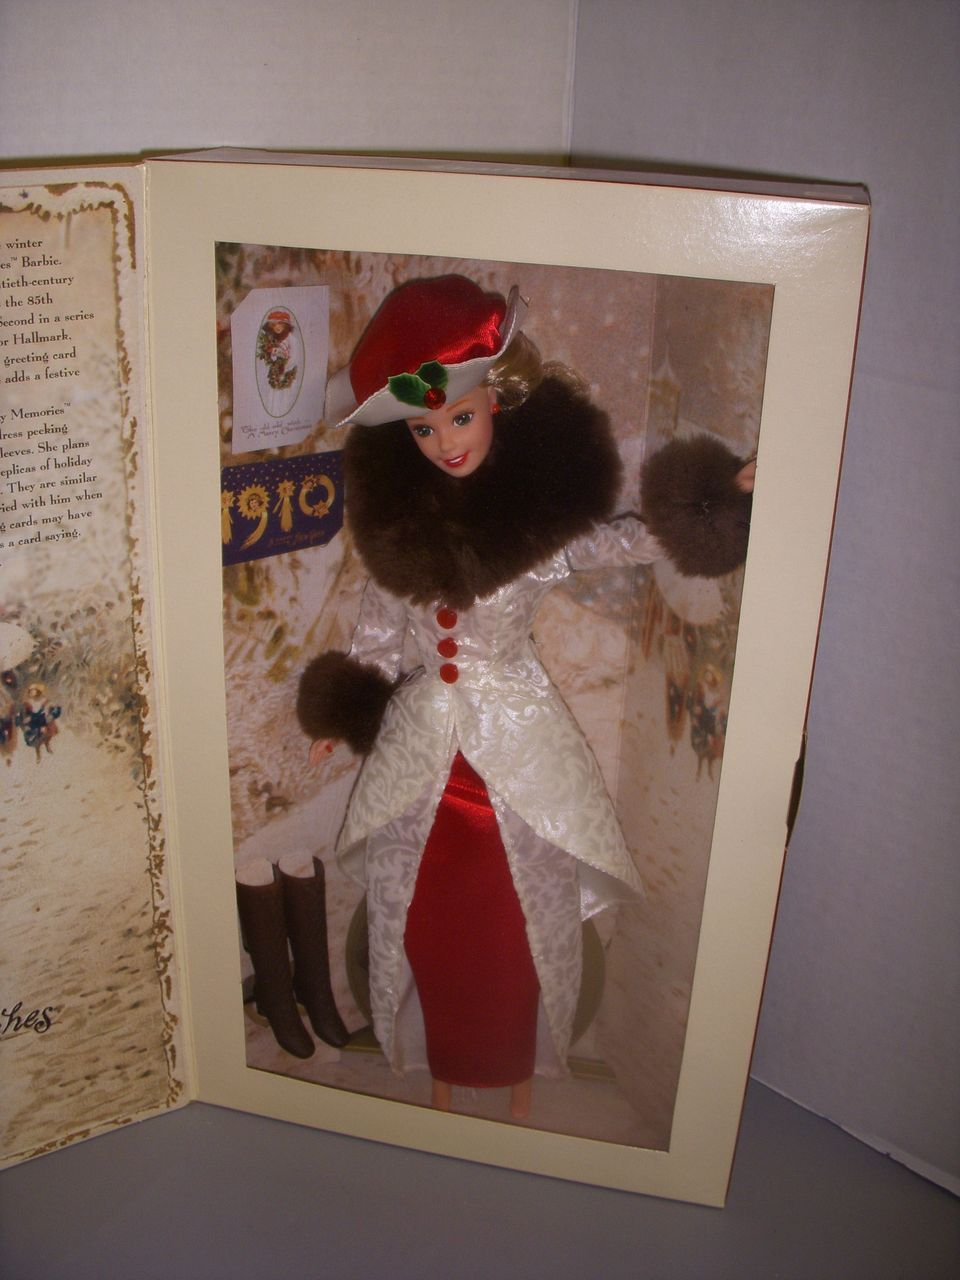 Holiday Memories Barbie Hallmark 1995 by Mattel!